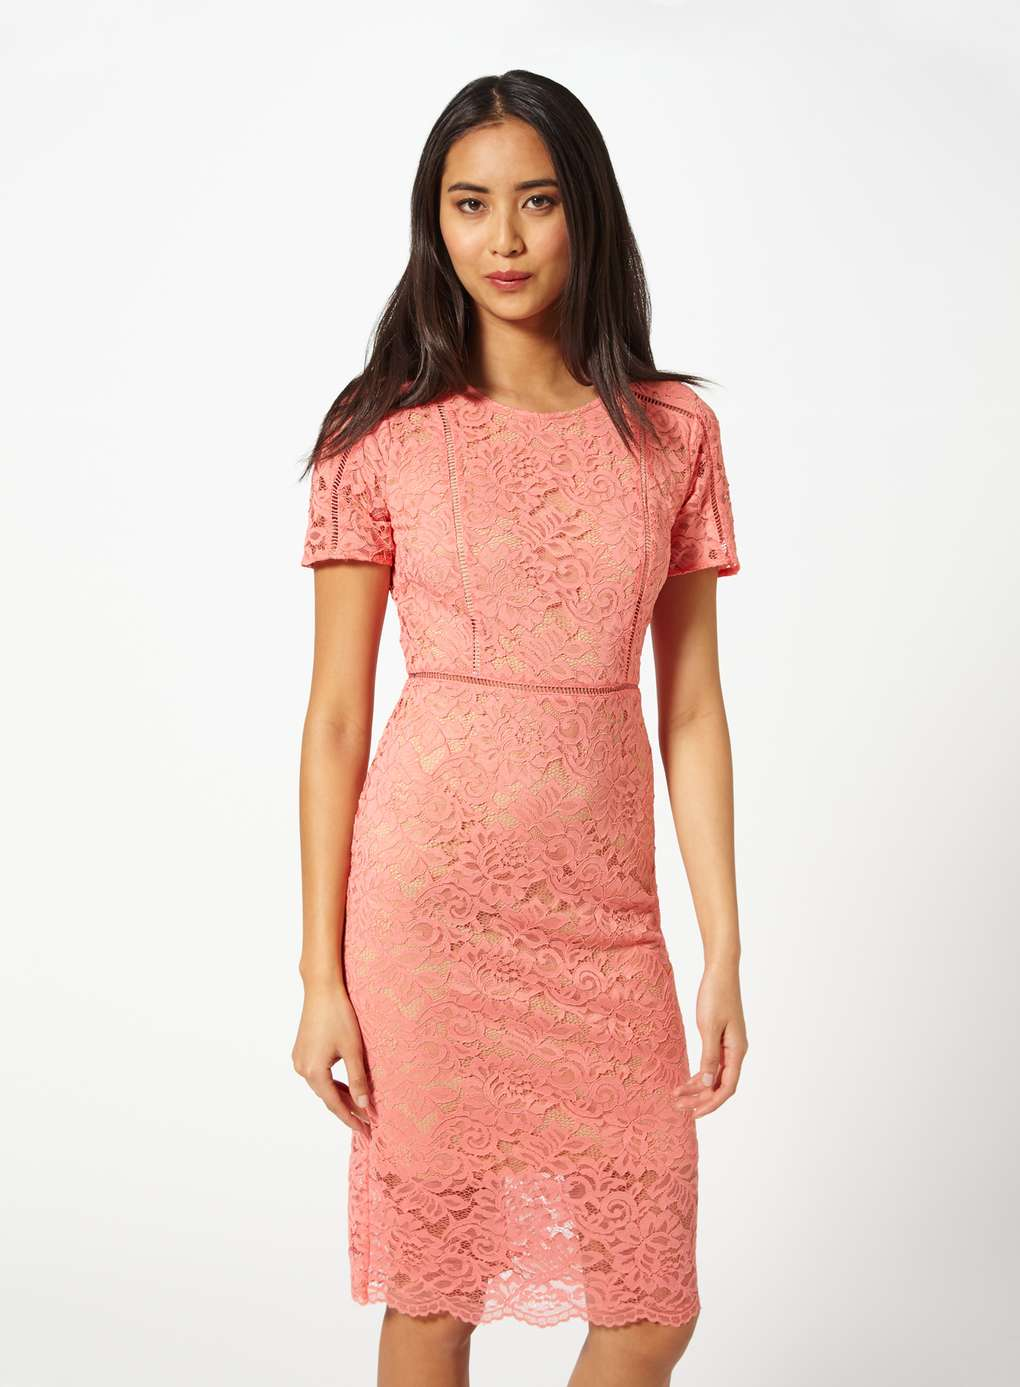 Pretty wedding guest dresses for the summer! - Love Our ...